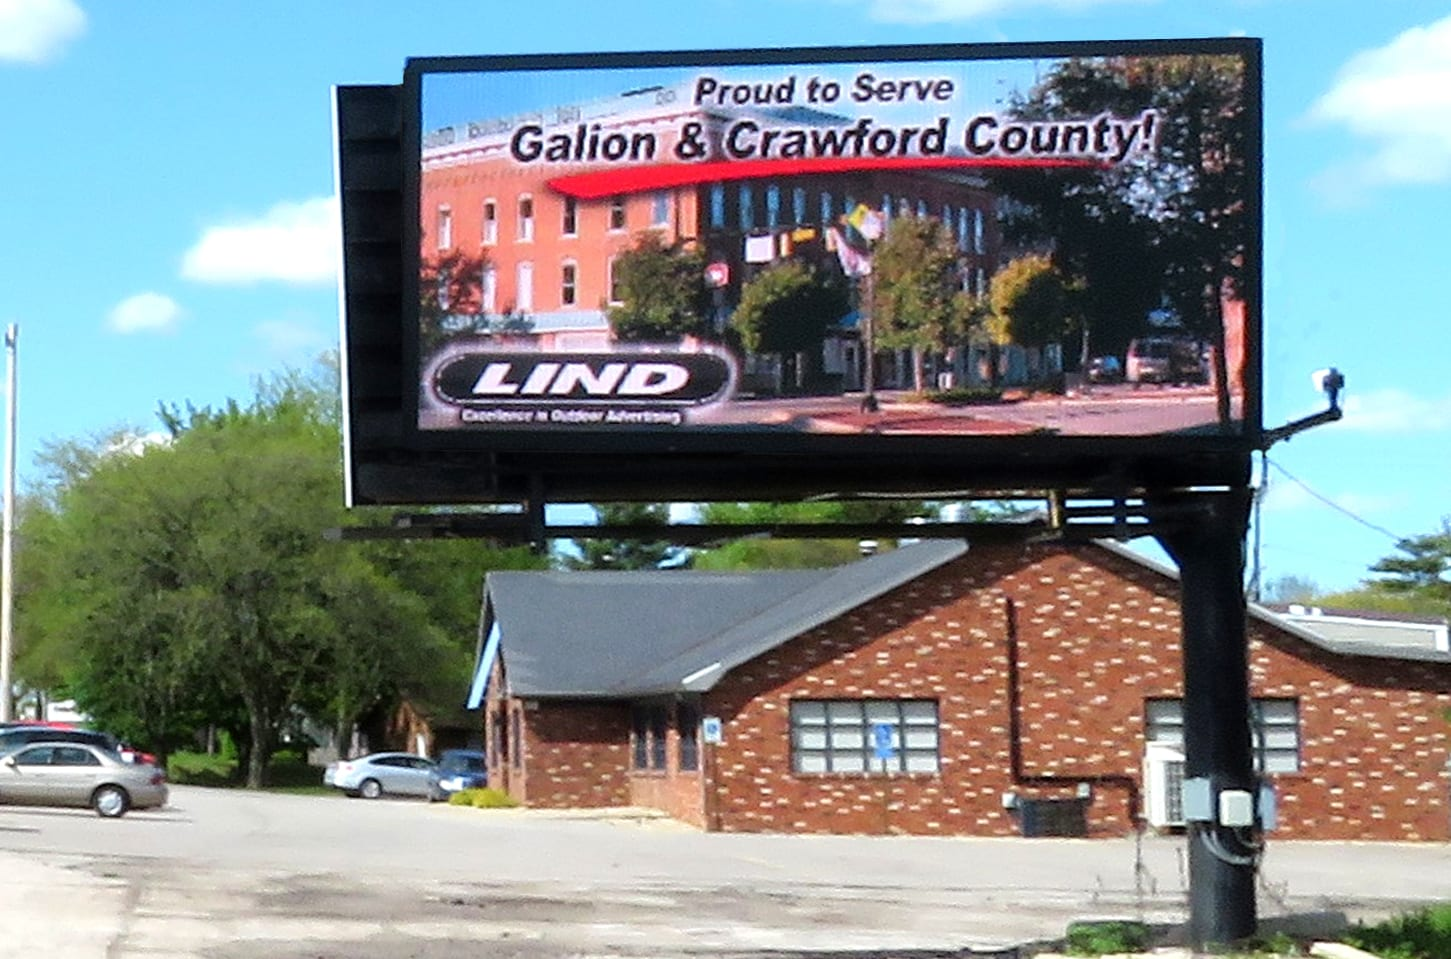 """An image of Lind's digital billboard in Galion. On the board, there is an image reading """"Proud to Serve Galion & Crawford County!"""""""